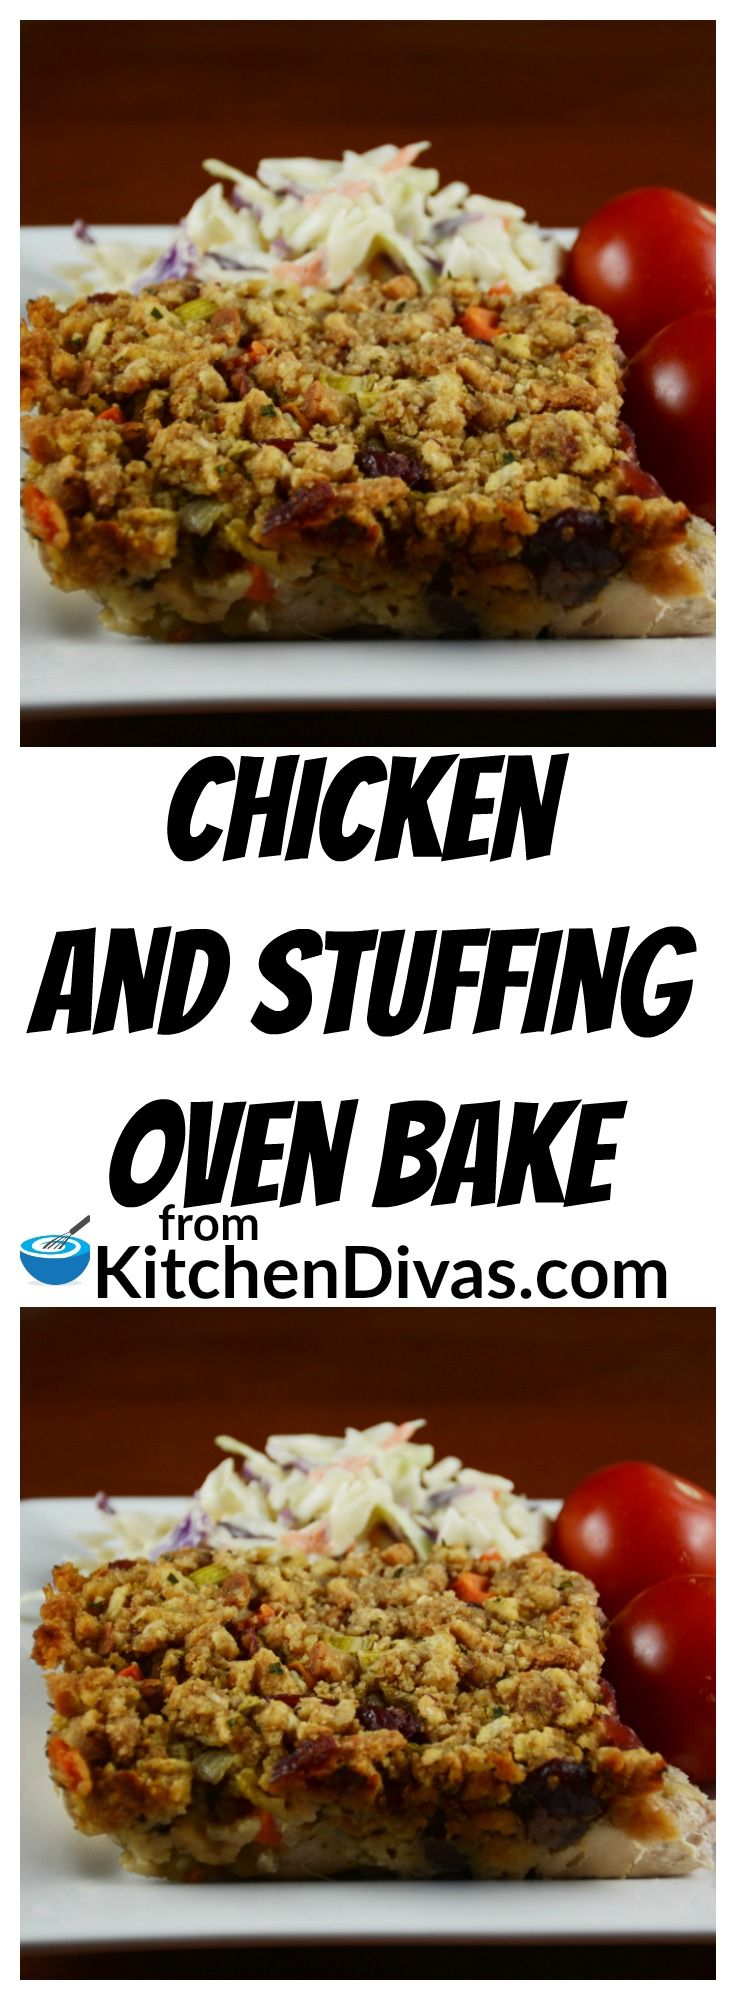 Chicken and Stuffing Oven Bake | Recipe | Stove top stuffing, Oven ...